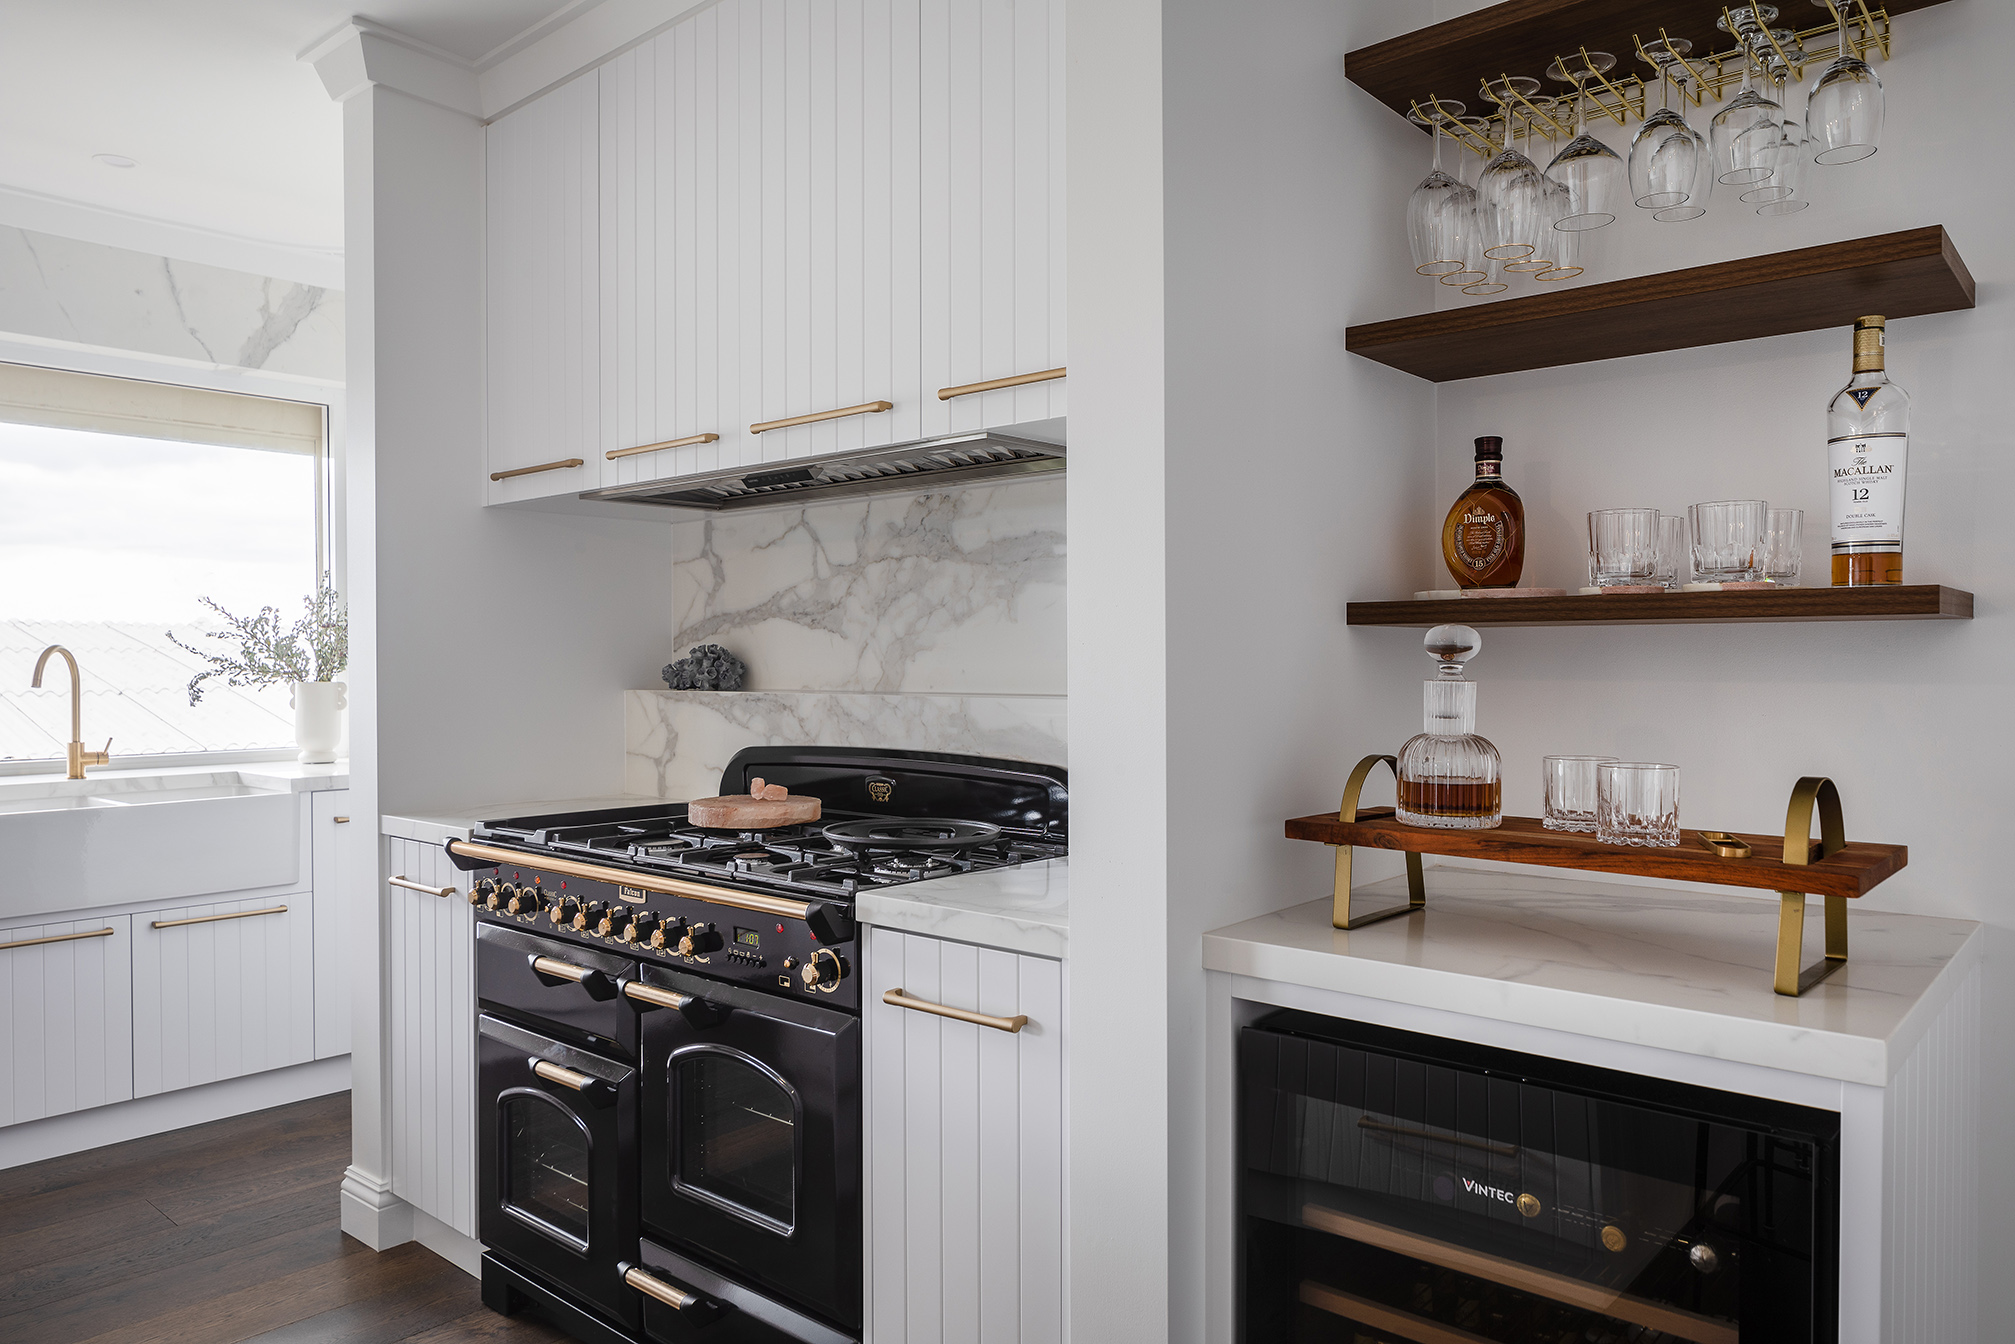 North Beach Coastal Barn Kitchen close up of feature Falcon oven in black with porcelain stone tile splashback and V groove cabinetry below and above.